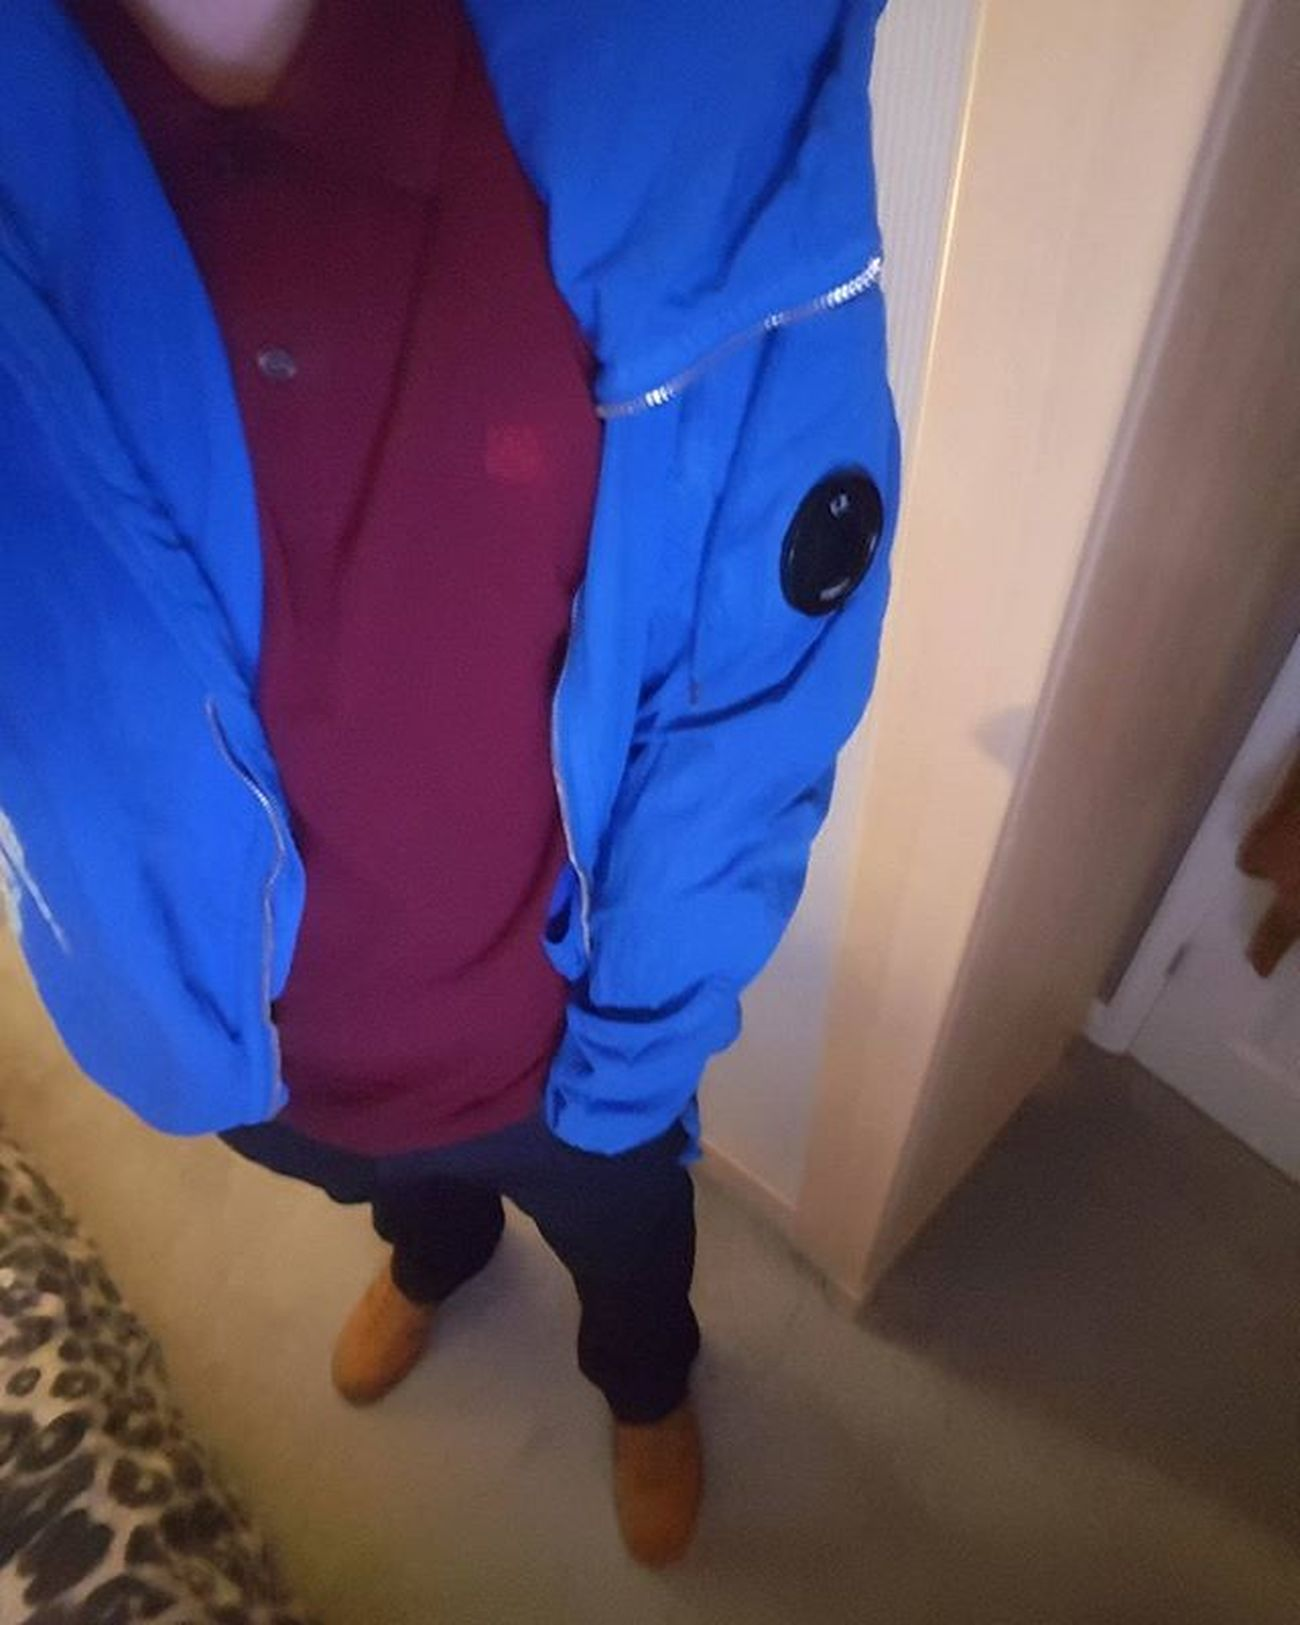 Mates 18s sorted 🍺🎶🍺@joshwilkinson4 Casual Cpcompanyuk CPCompany Adiporn Adifreak Adidasoriginals Adidashawaii Prettygreen Aquascutum